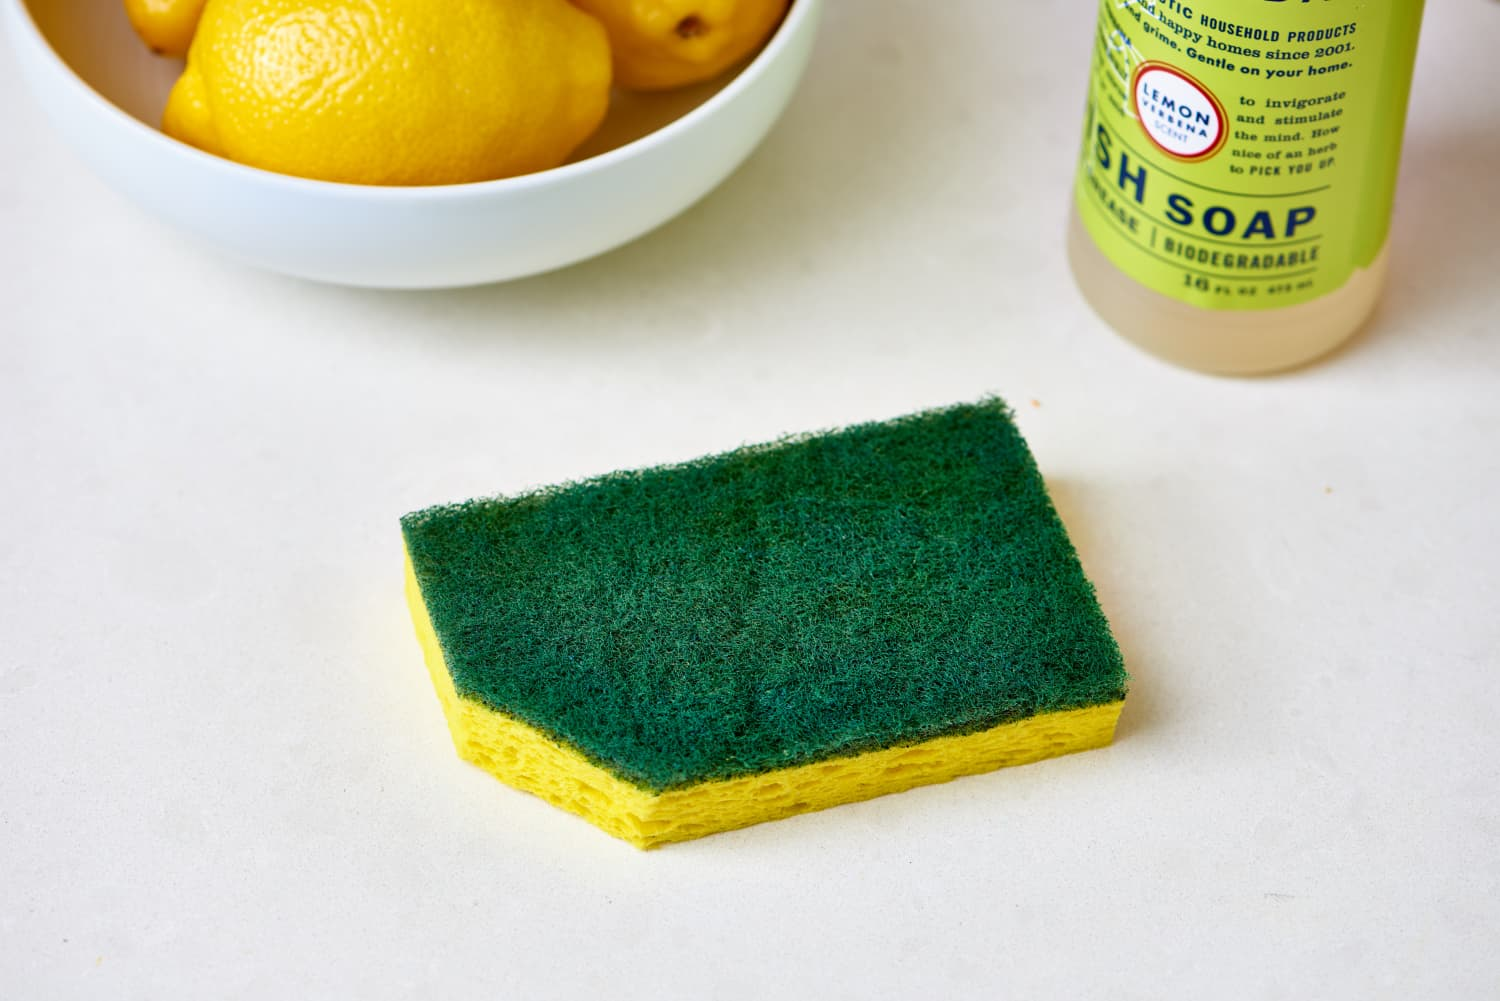 Why You Should Cut a Corner Off Your Sponge